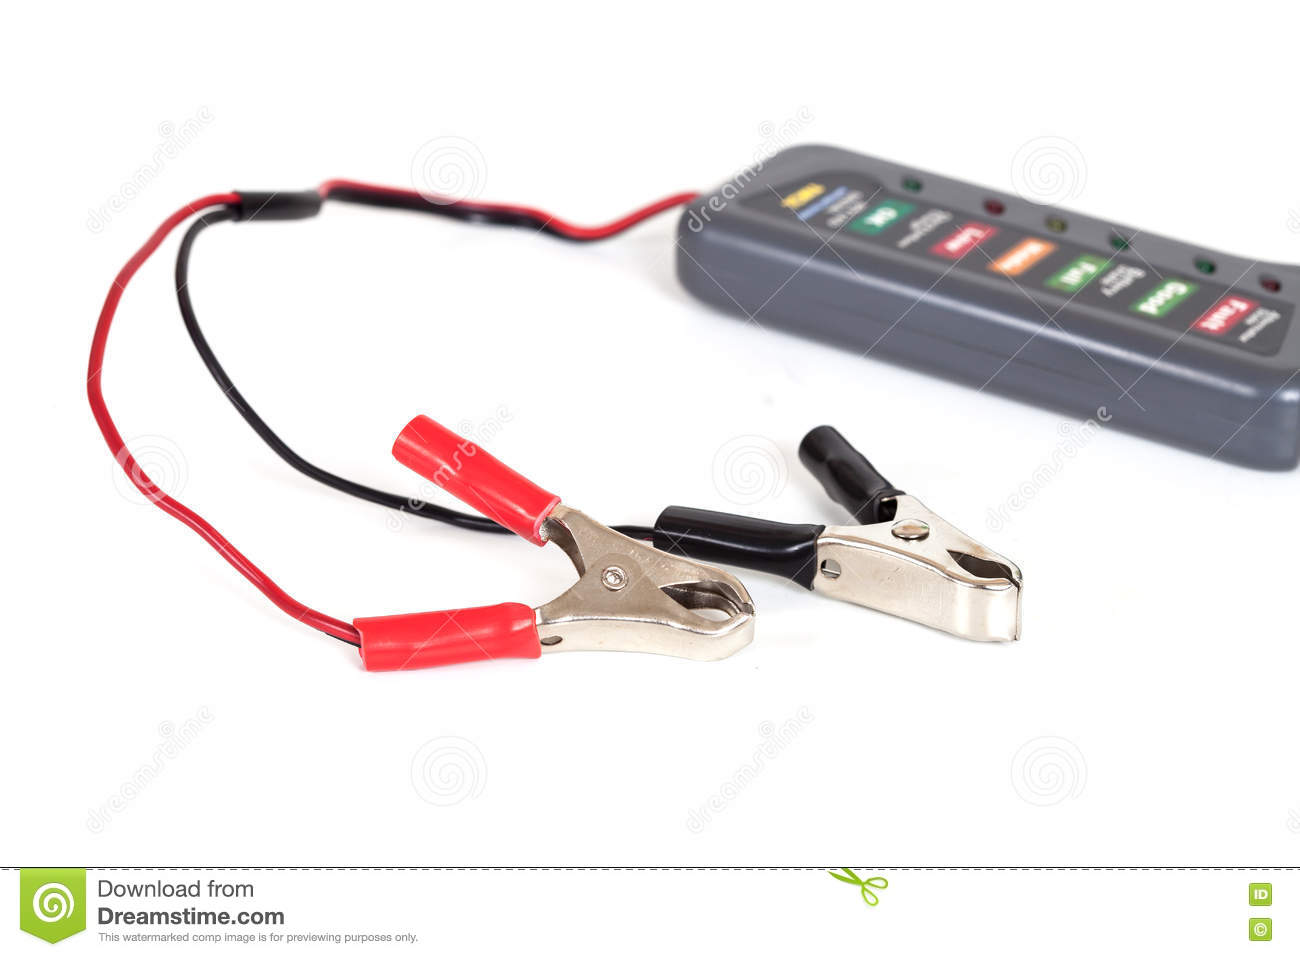 Alligator Clip Jumper Wires Stock Image - Image of cable, alligator ...